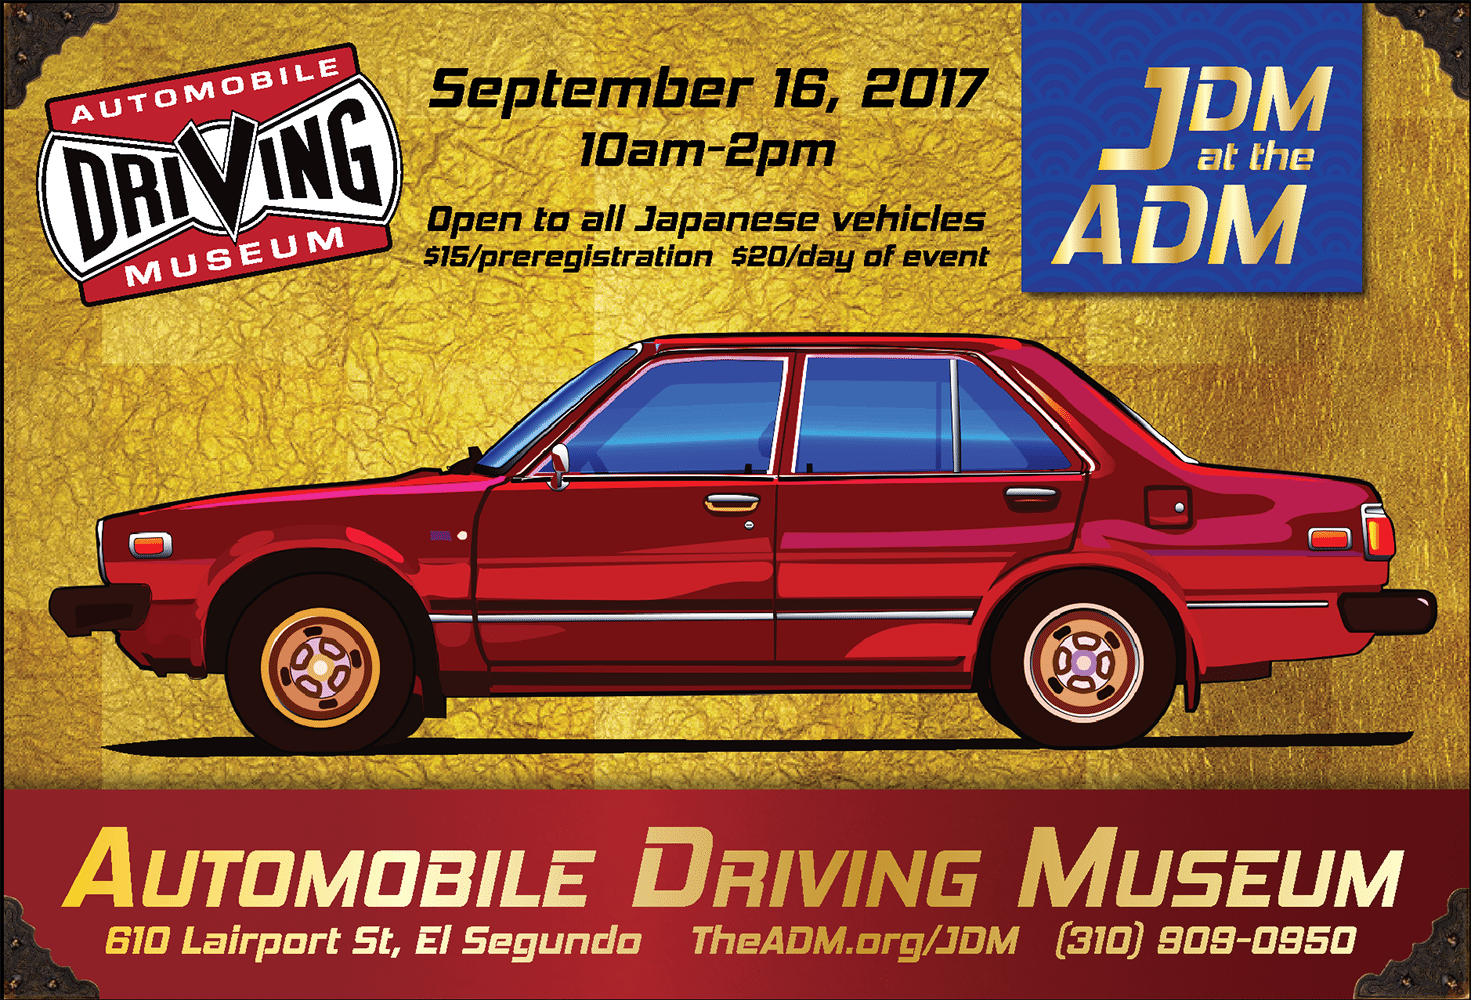 September 16: JDM @ The ADM - Automobile Driving Museum